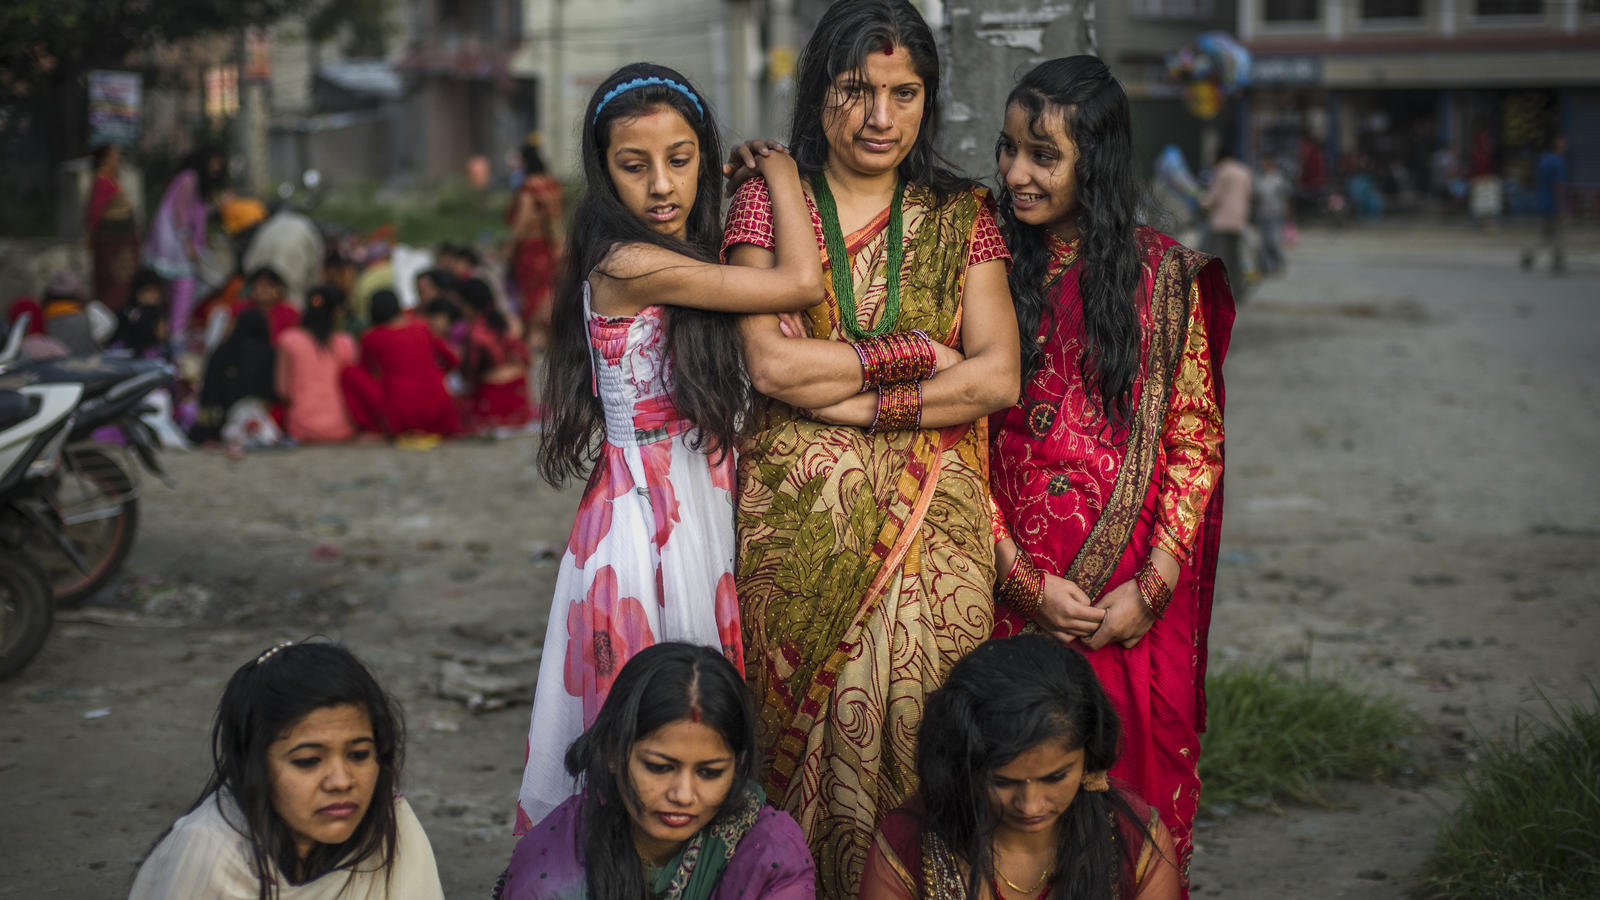 Women observing the ritual to wash away any sins committed during menstration at the annual Rishi Panchami festival, Kathmand, Nepal, 2013.